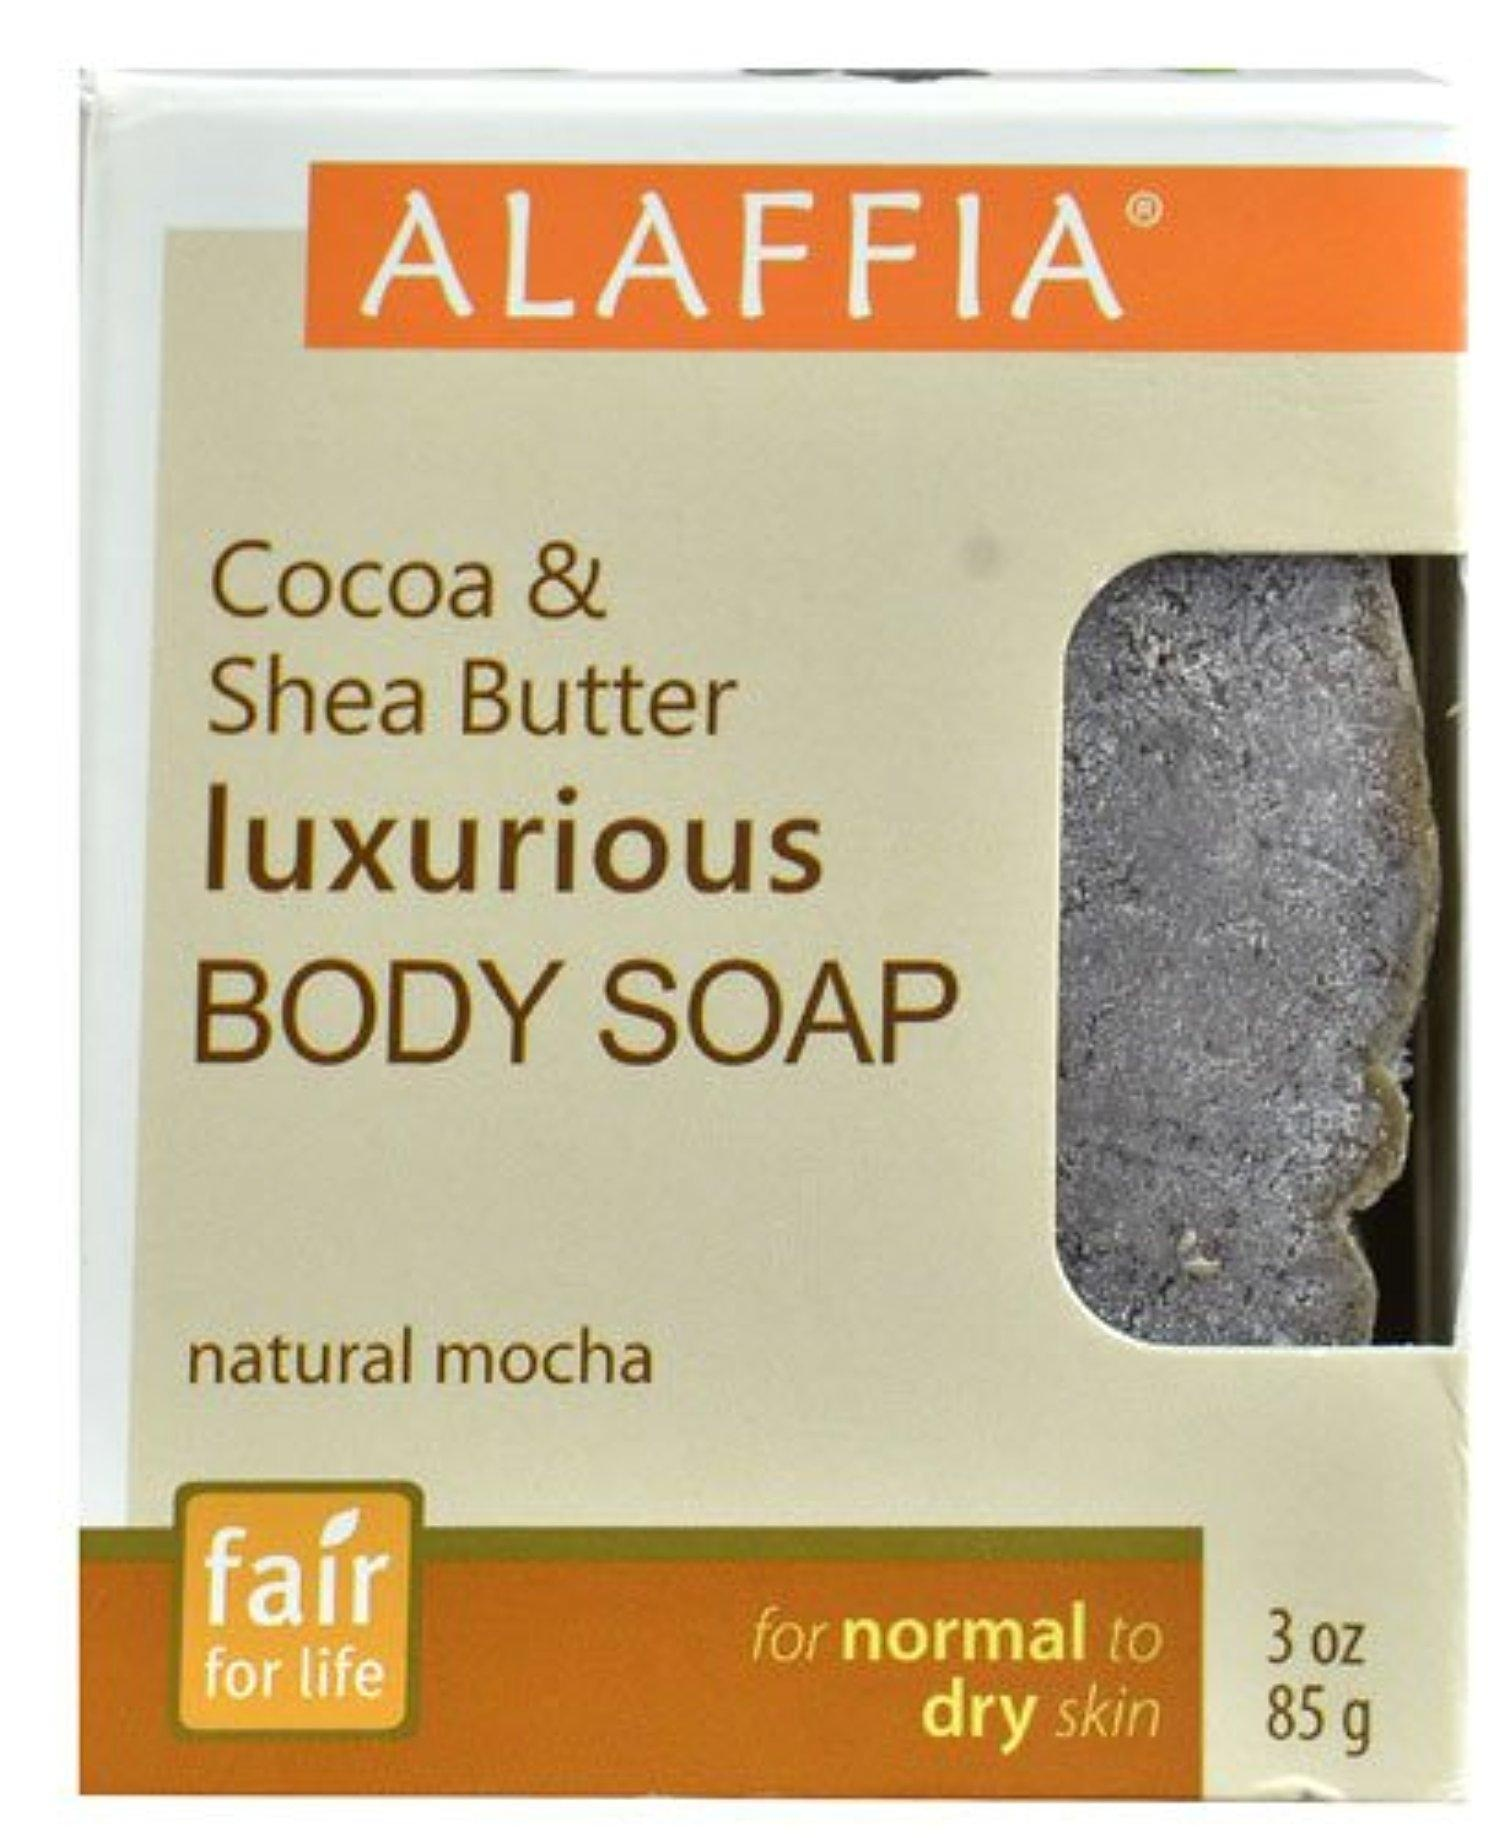 Alaffia Cocoa & Shea Butter Luxurious Body Soap Natural Mocha -- 3 oz